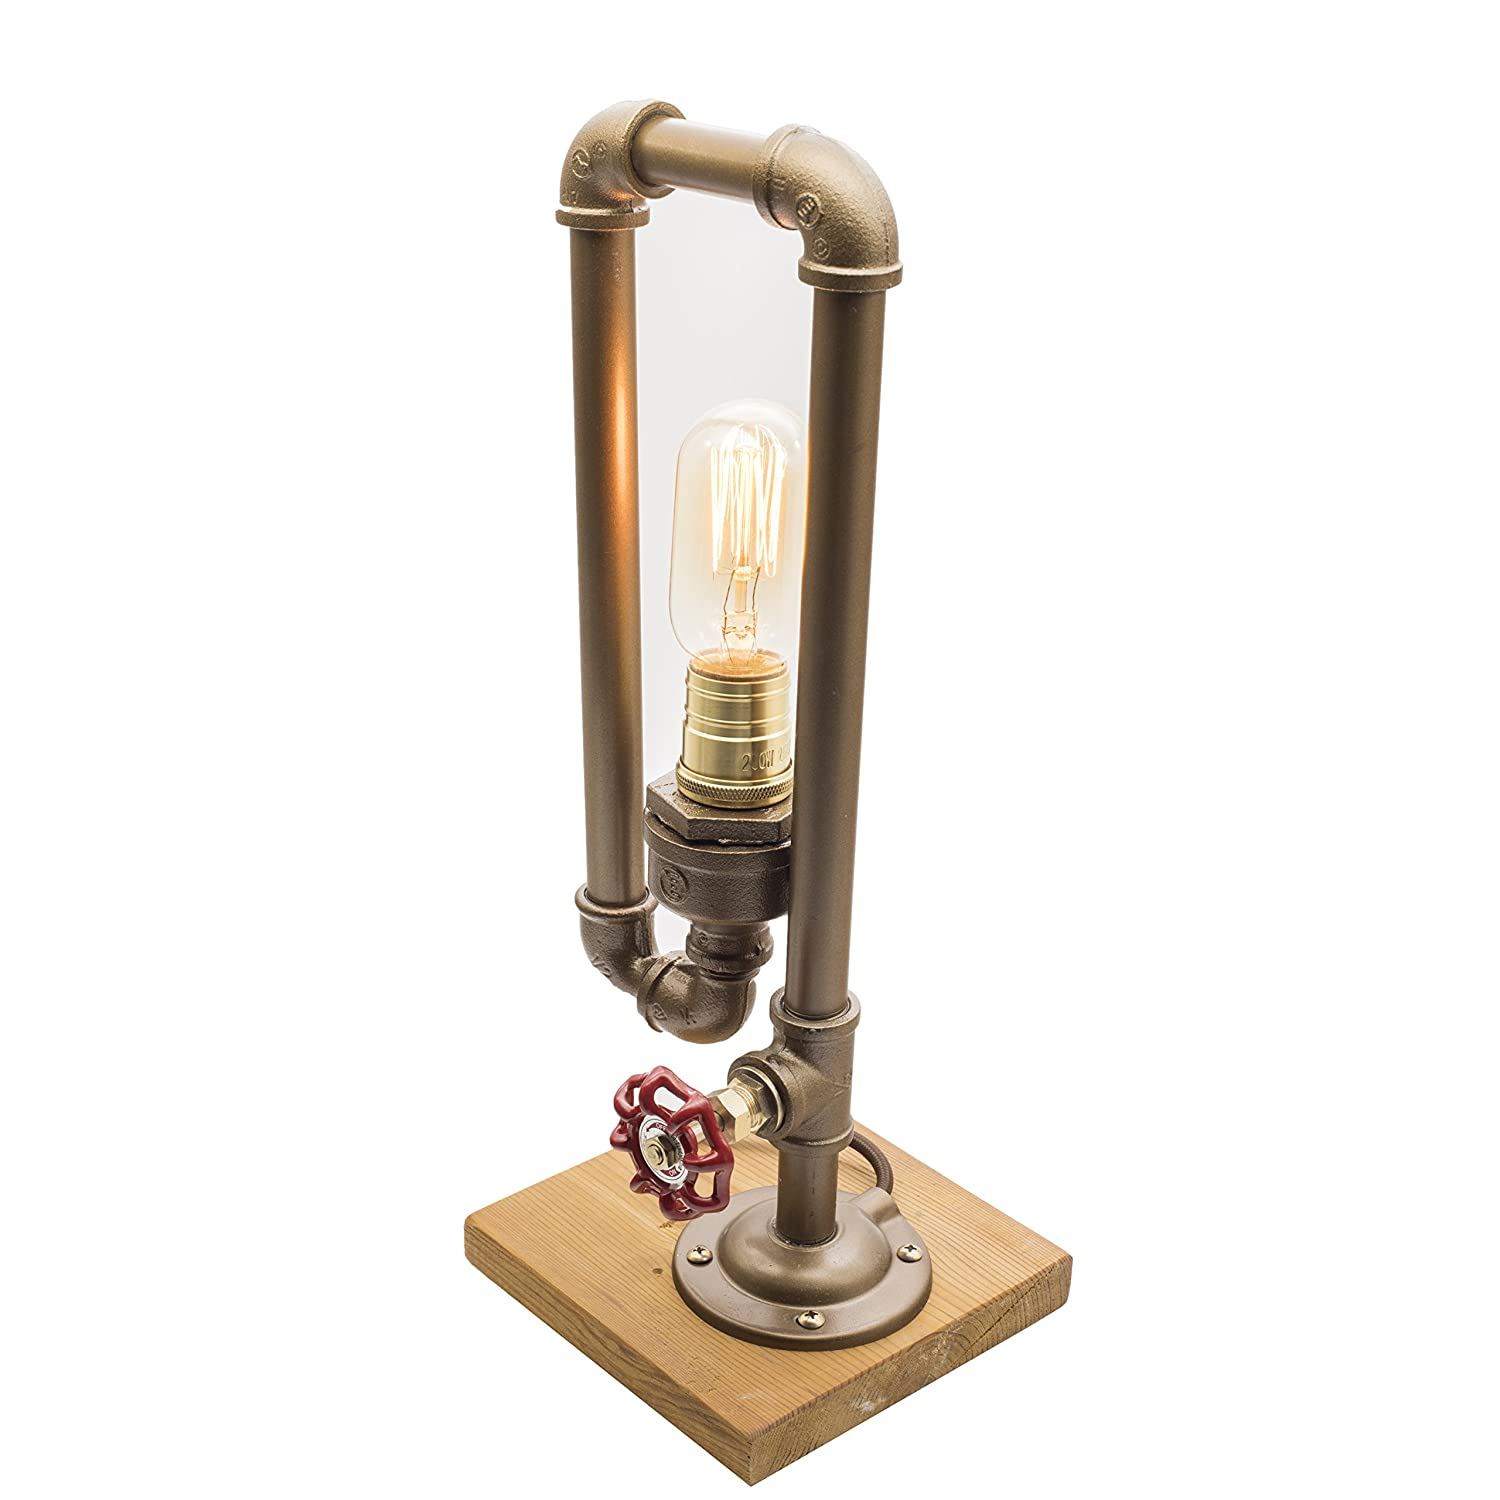 Y Nut Loft Style Lamp The Thinker Steampunk Industrial Vintage Wood Base Metal Body Table Desk Light With Dimmer LL 001